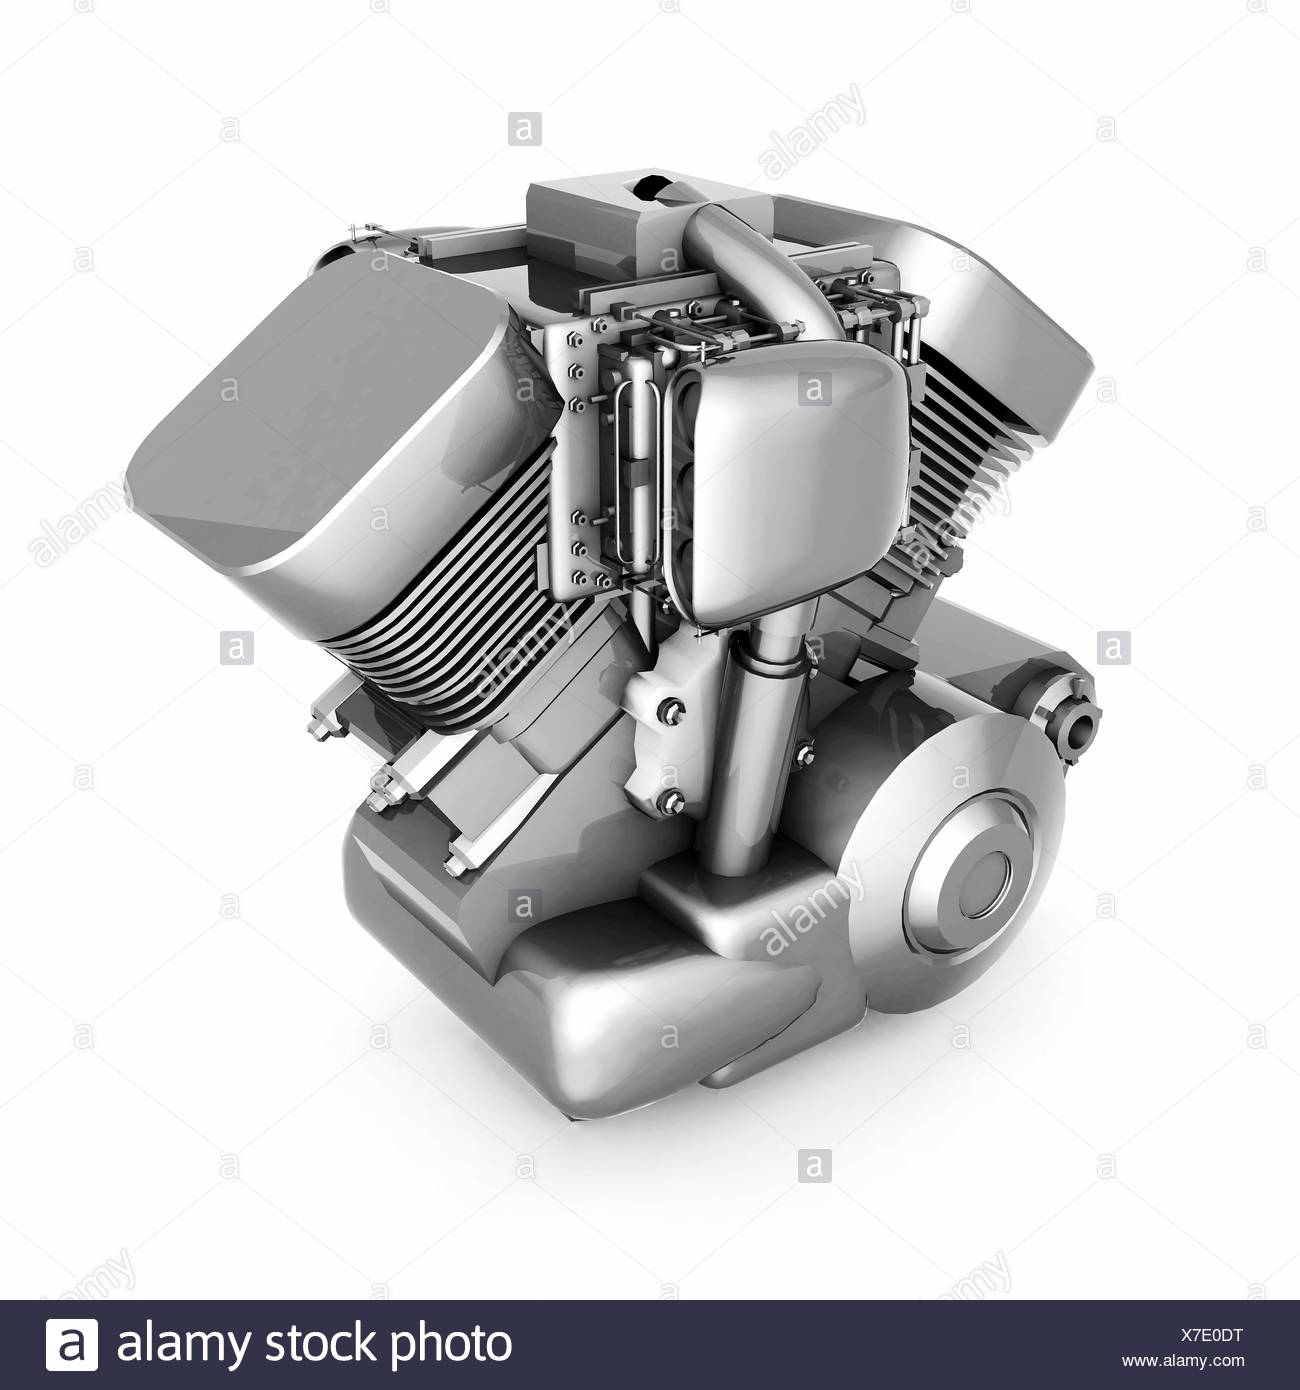 chromed motorcycle engine - Stock Image